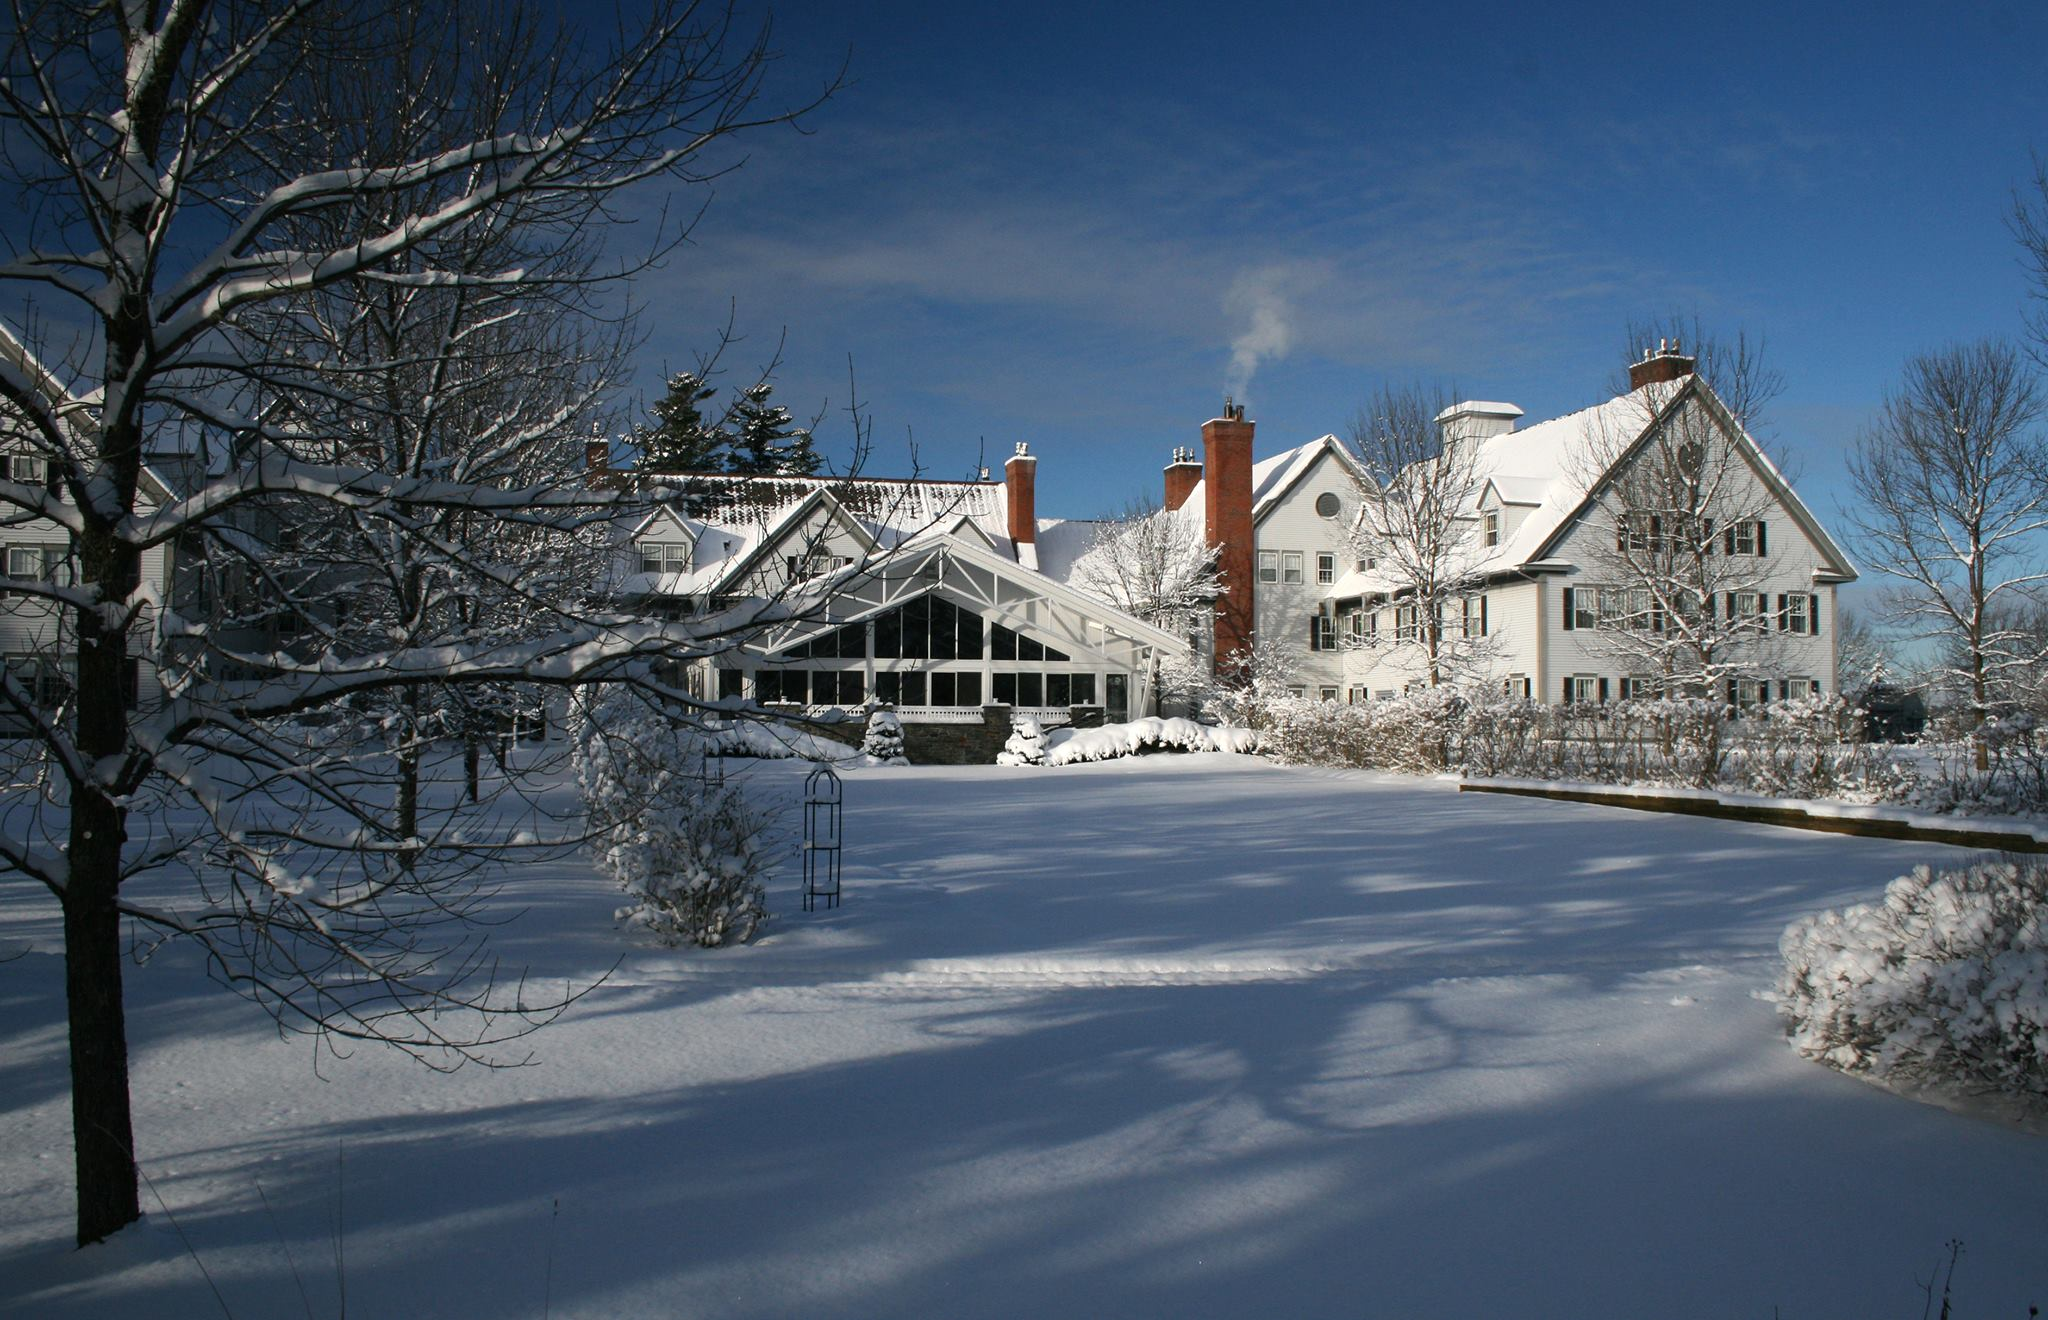 9 Restaurants In Vermont That Require A Reservation And